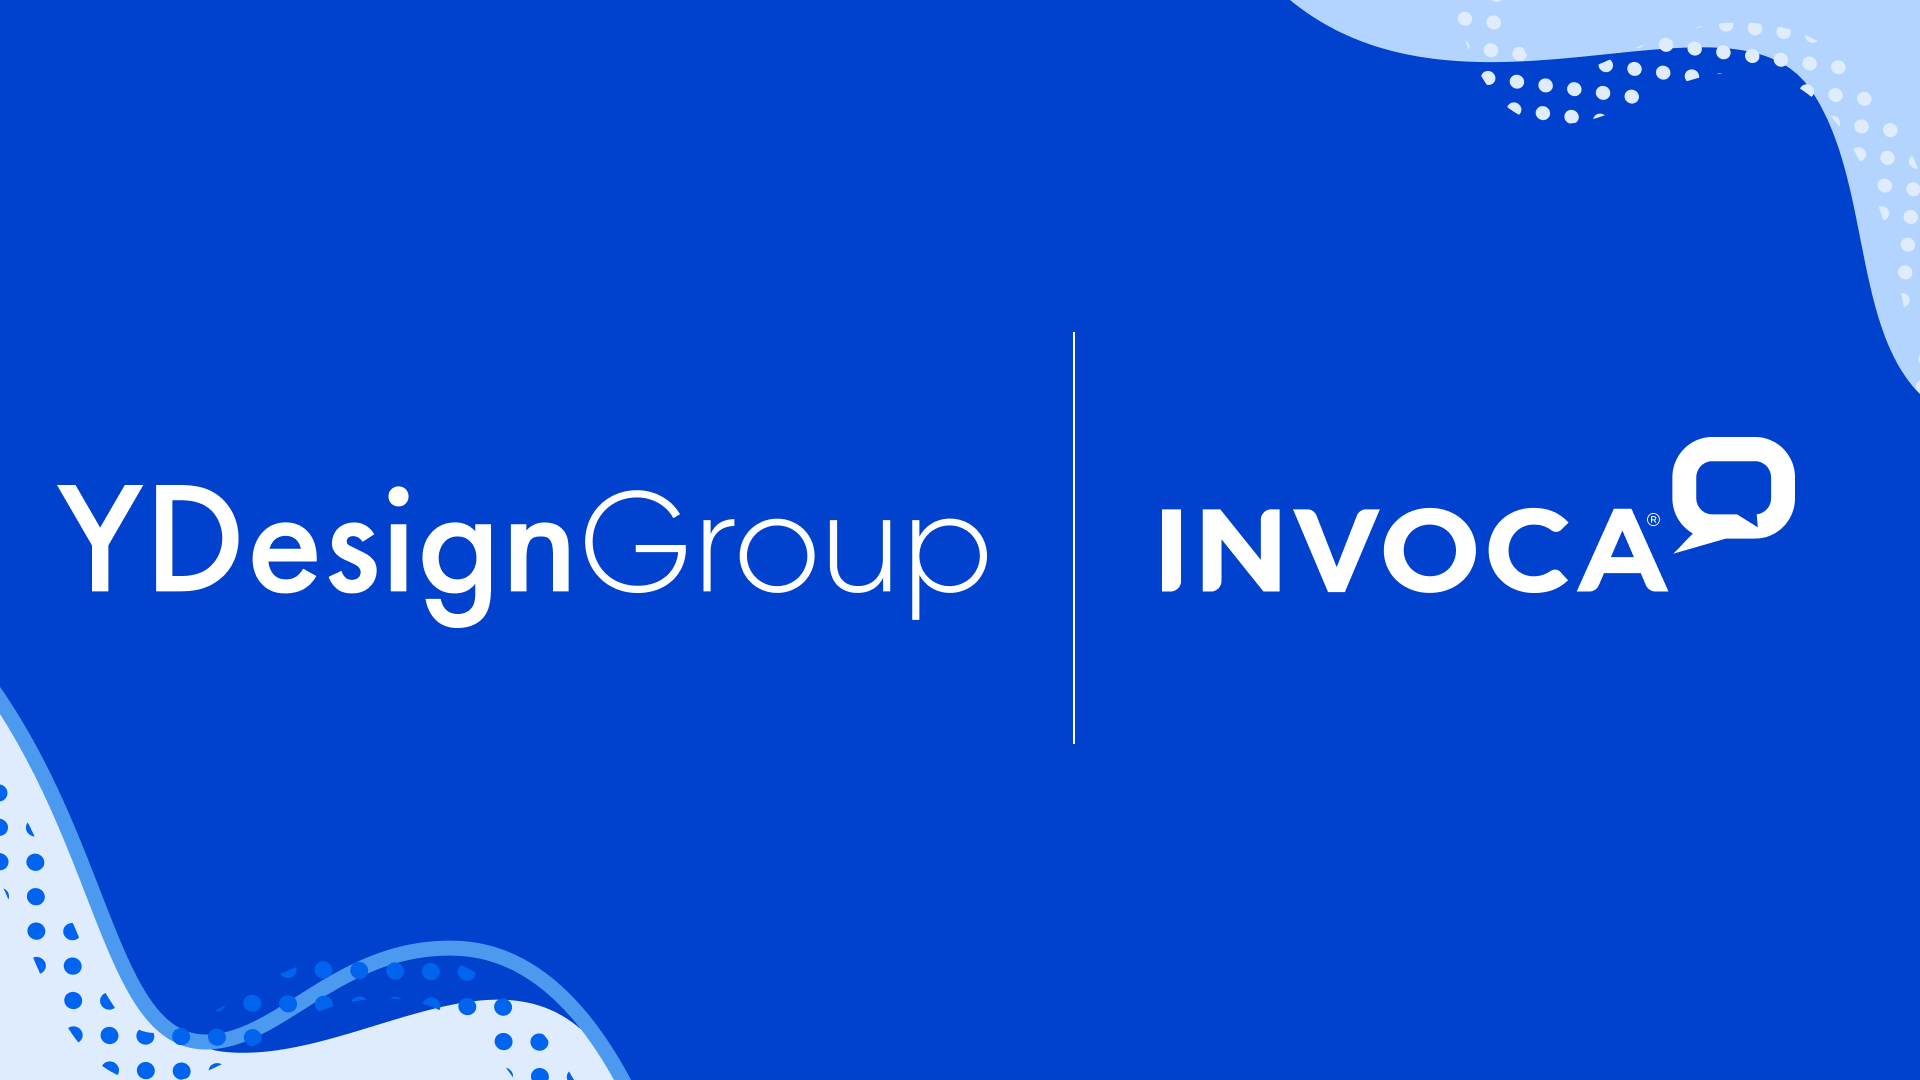 See How YDesign Group Uses Invoca to Boost its ROAS